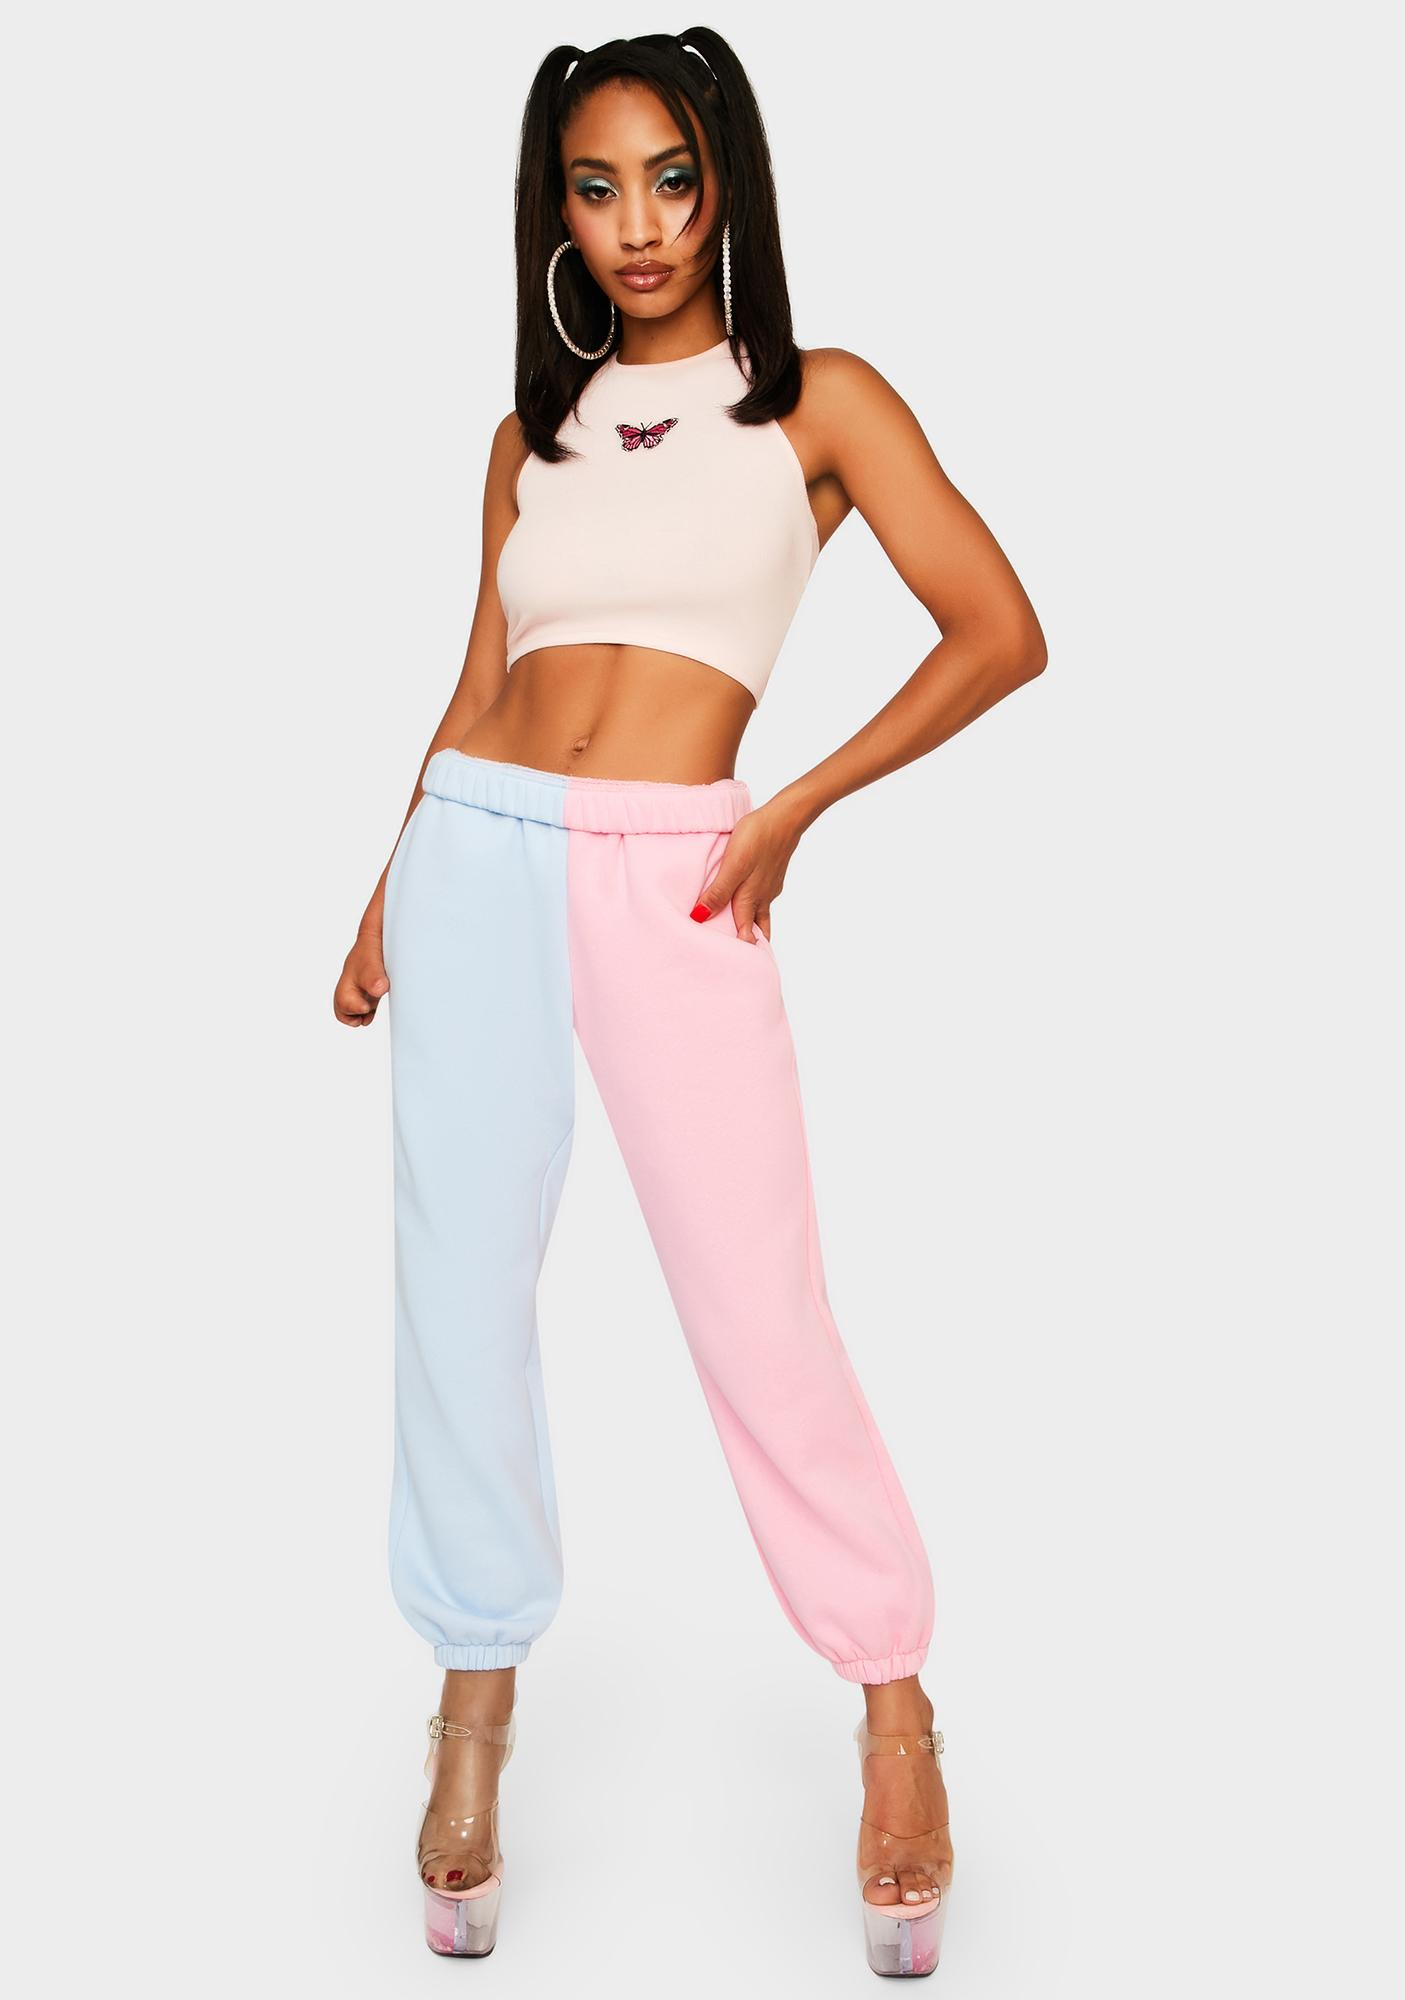 Cotton Candy Slacker Squad Two Tone Sweatpants